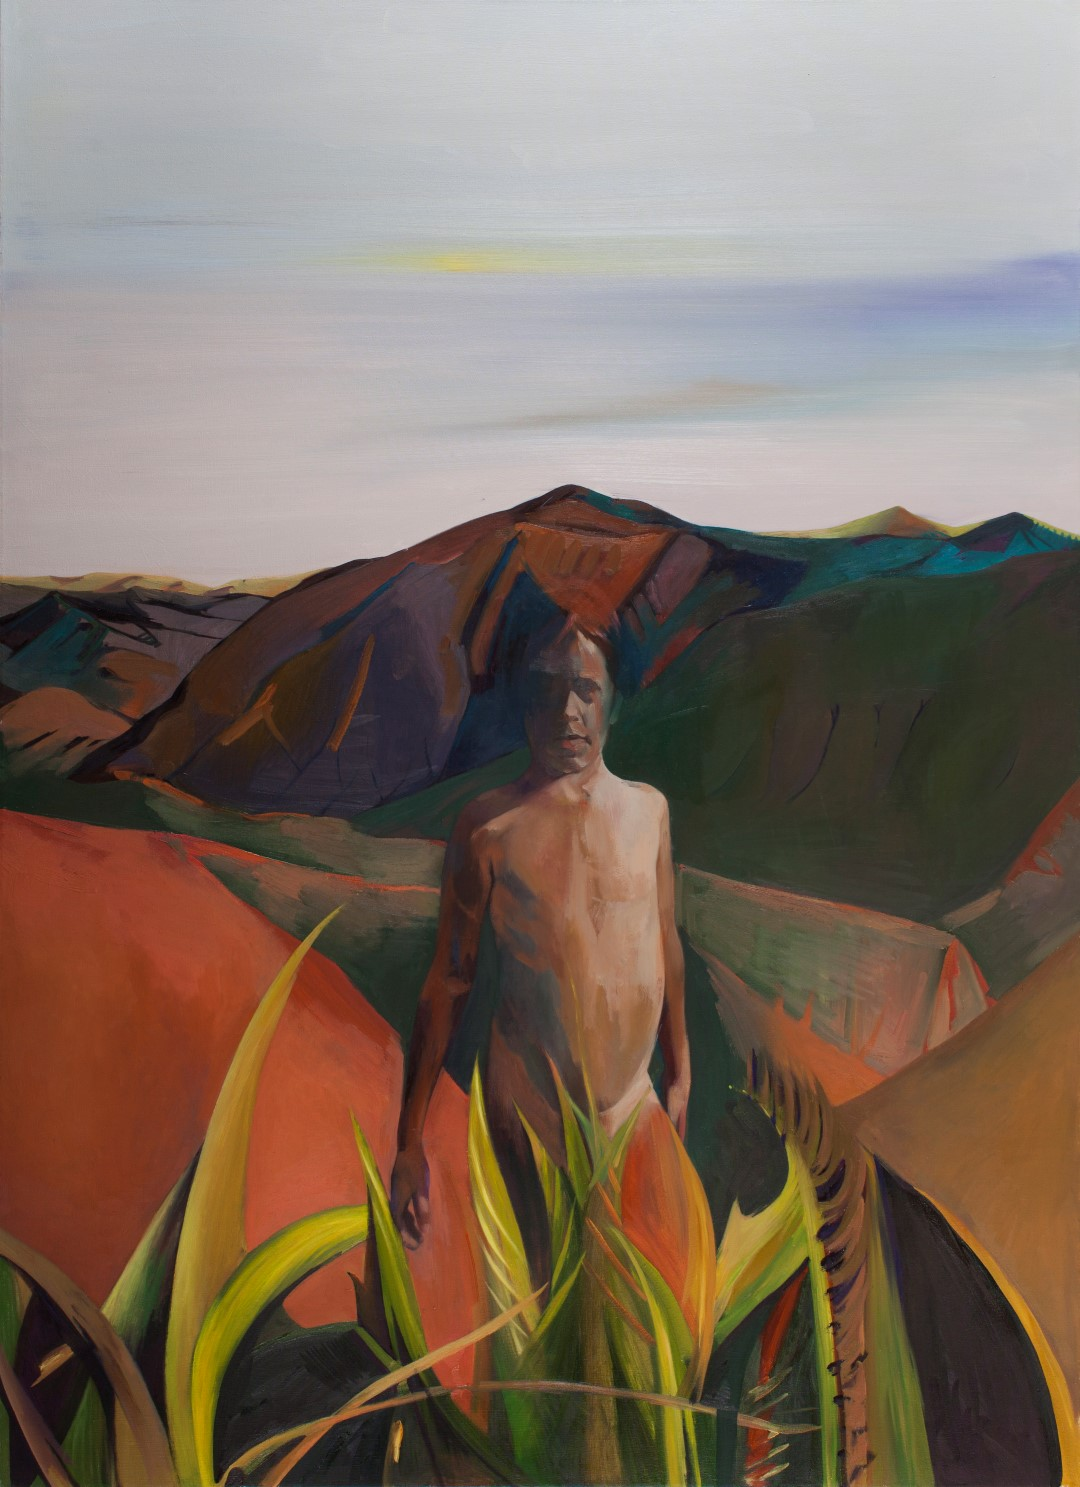 Lanscape in Body Form, 2015, Oil on canvas, 160x130 cm